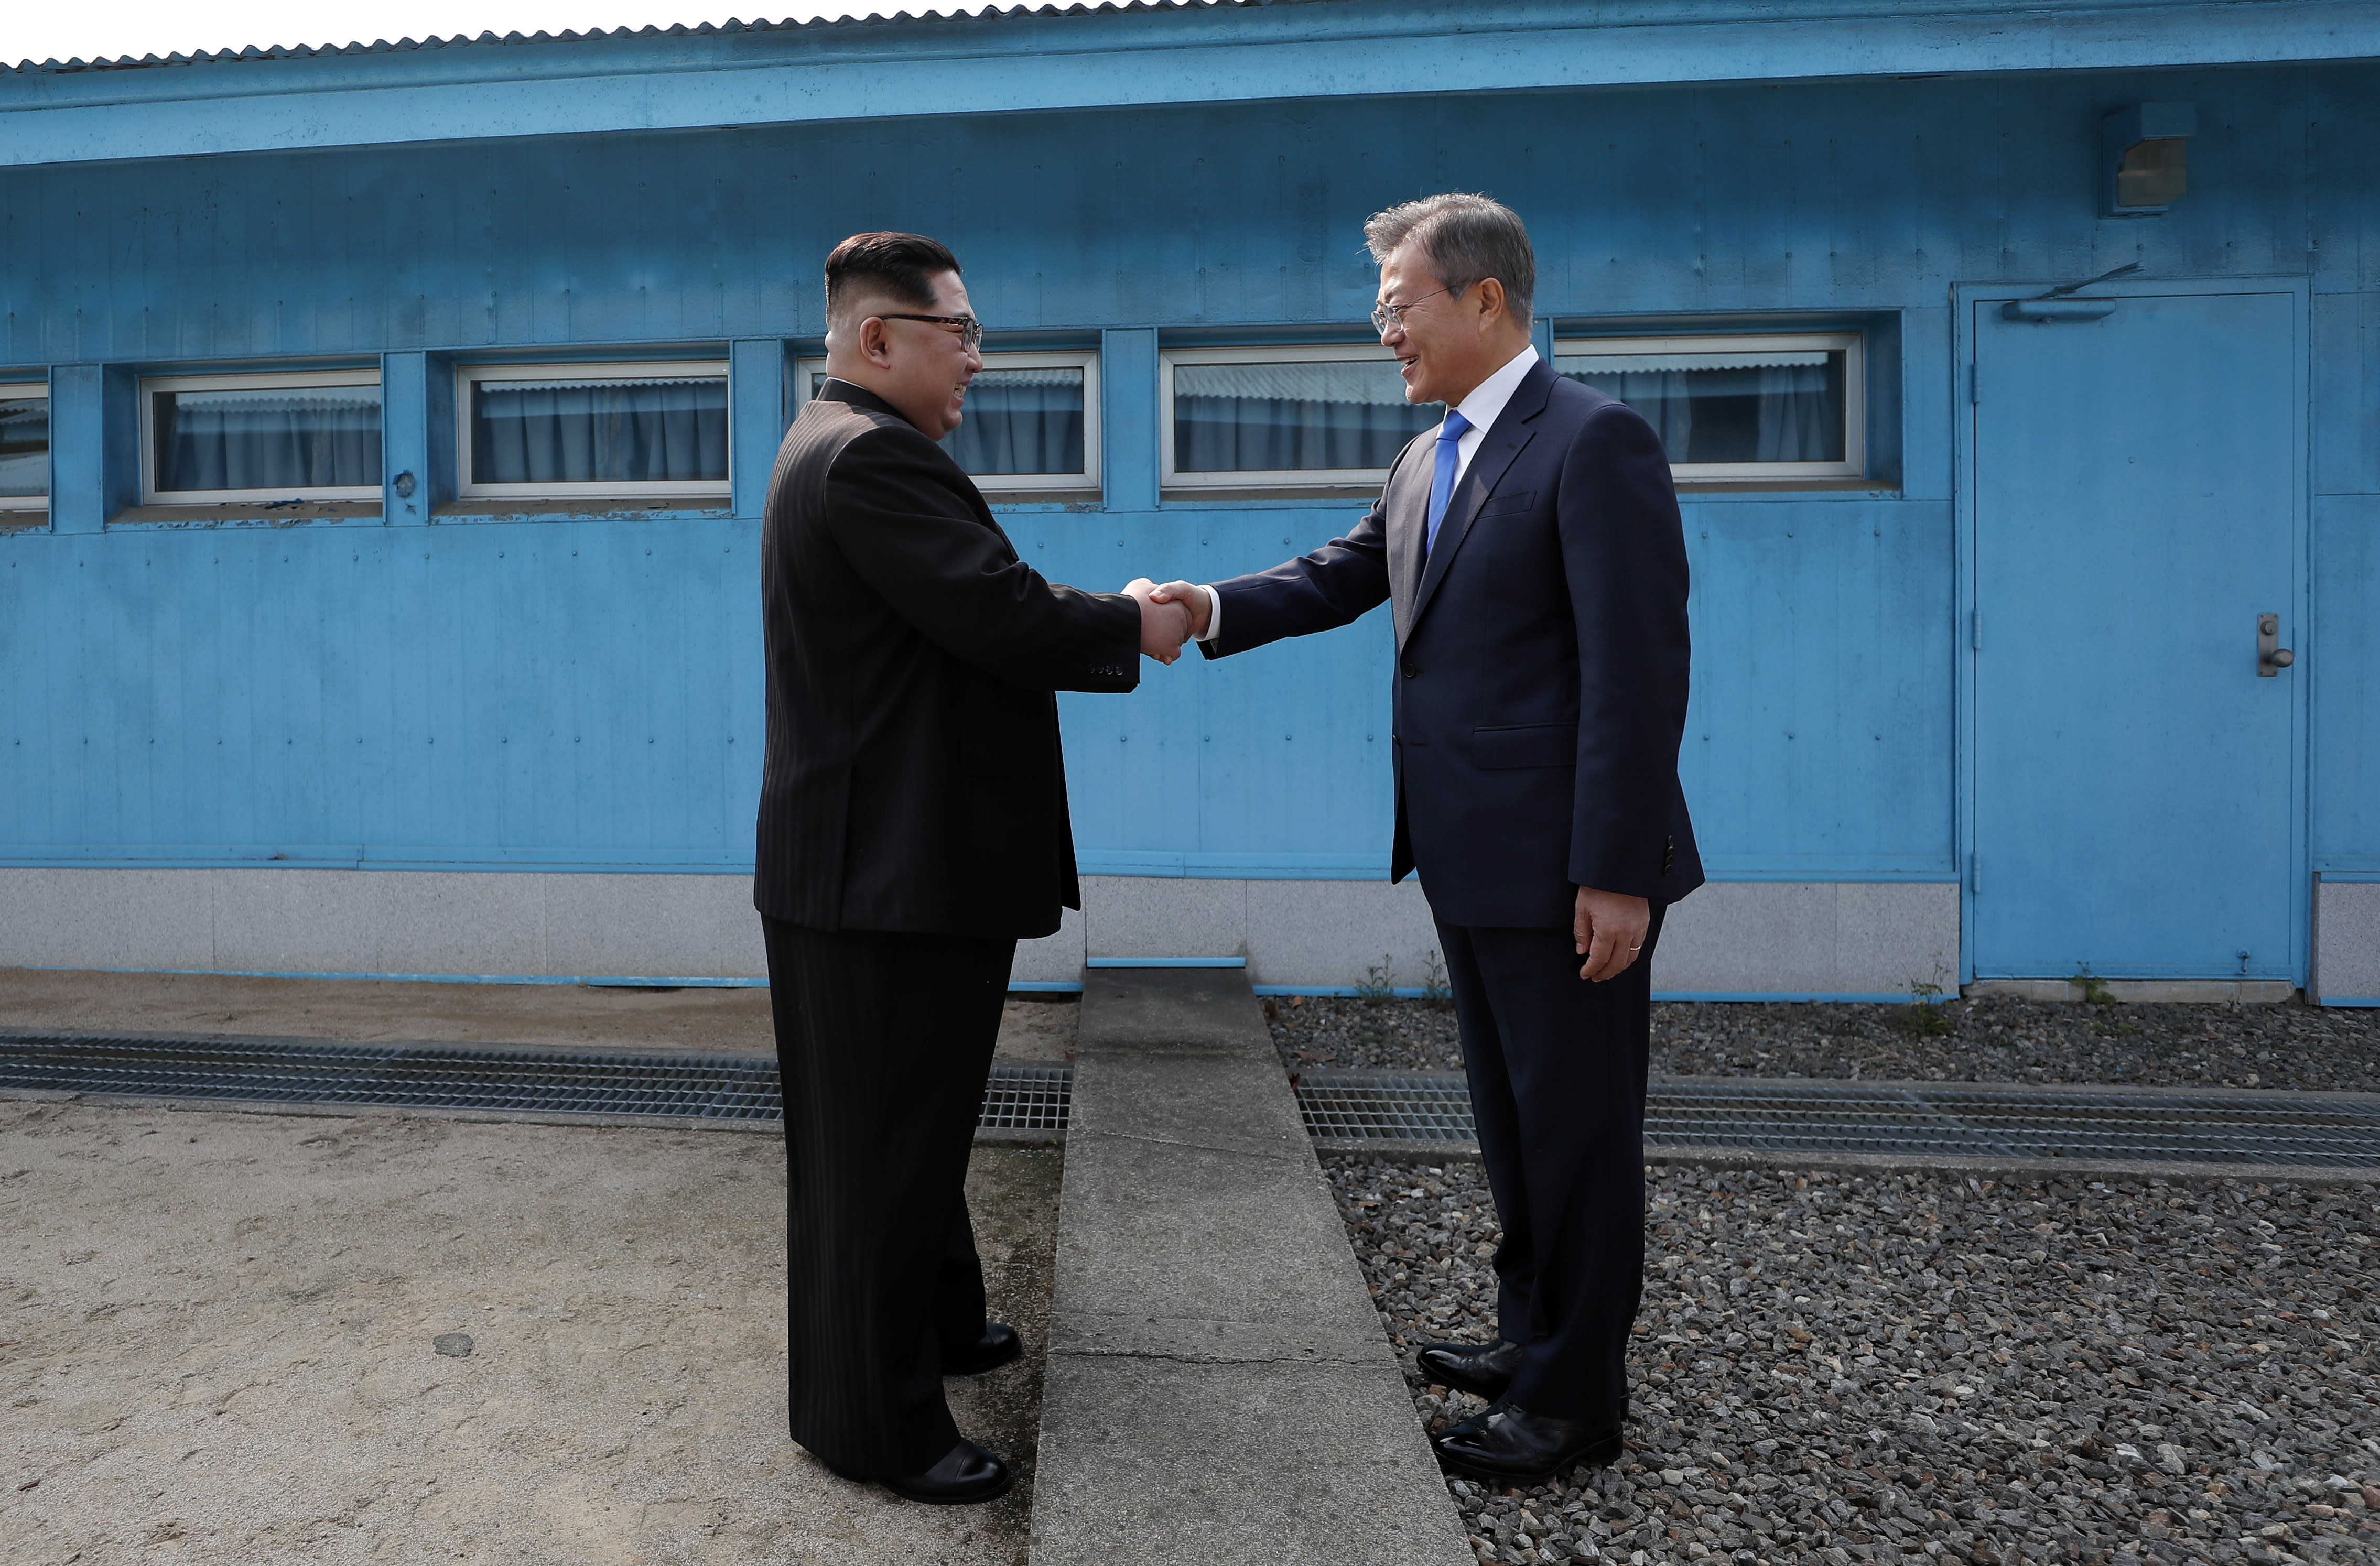 Officials of North Korea and South Korea Will Meet Ahead of Leaders' Summit